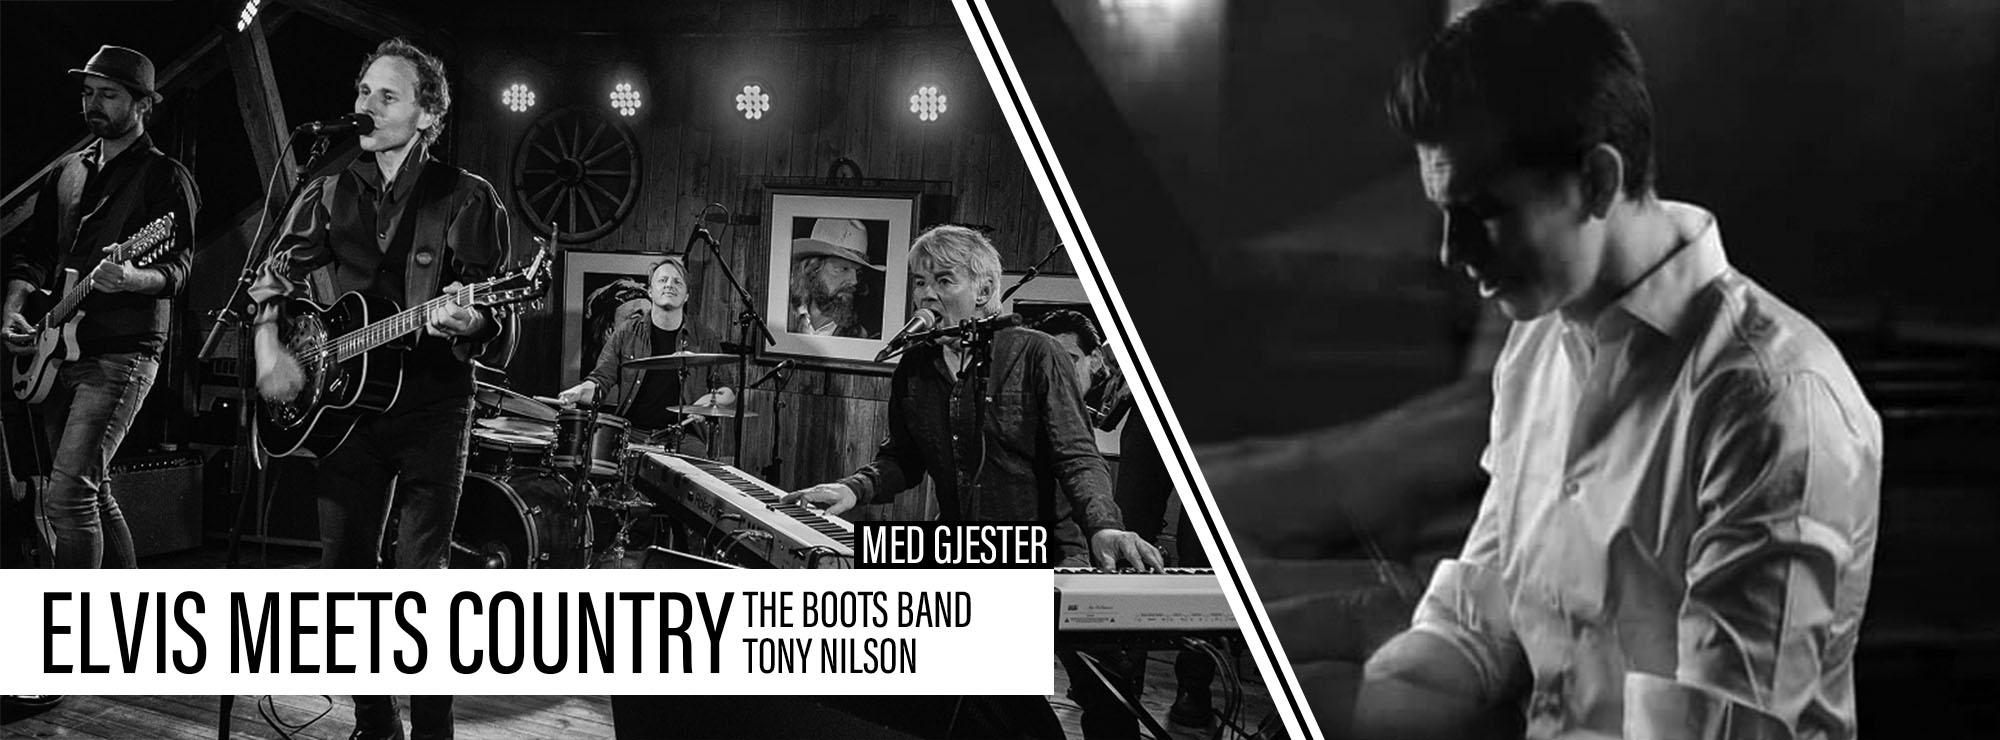 Elvis Meets Country: Tony Nilson, the Boots Band & gjester